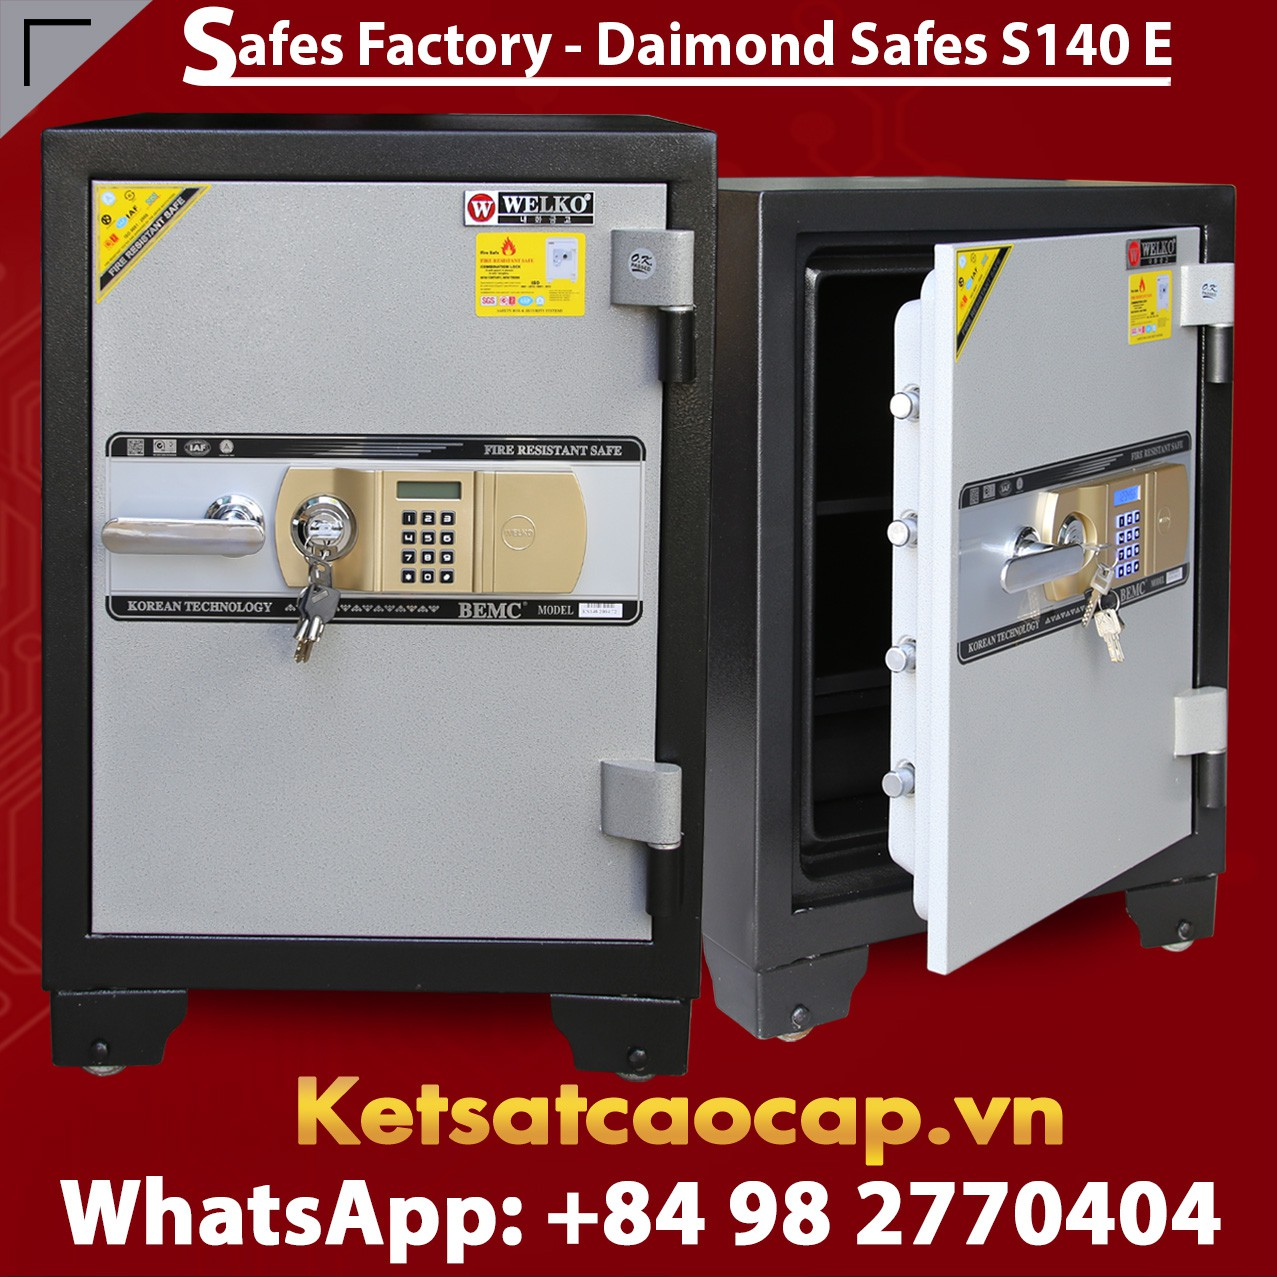 OFFICE SAFES S140 E